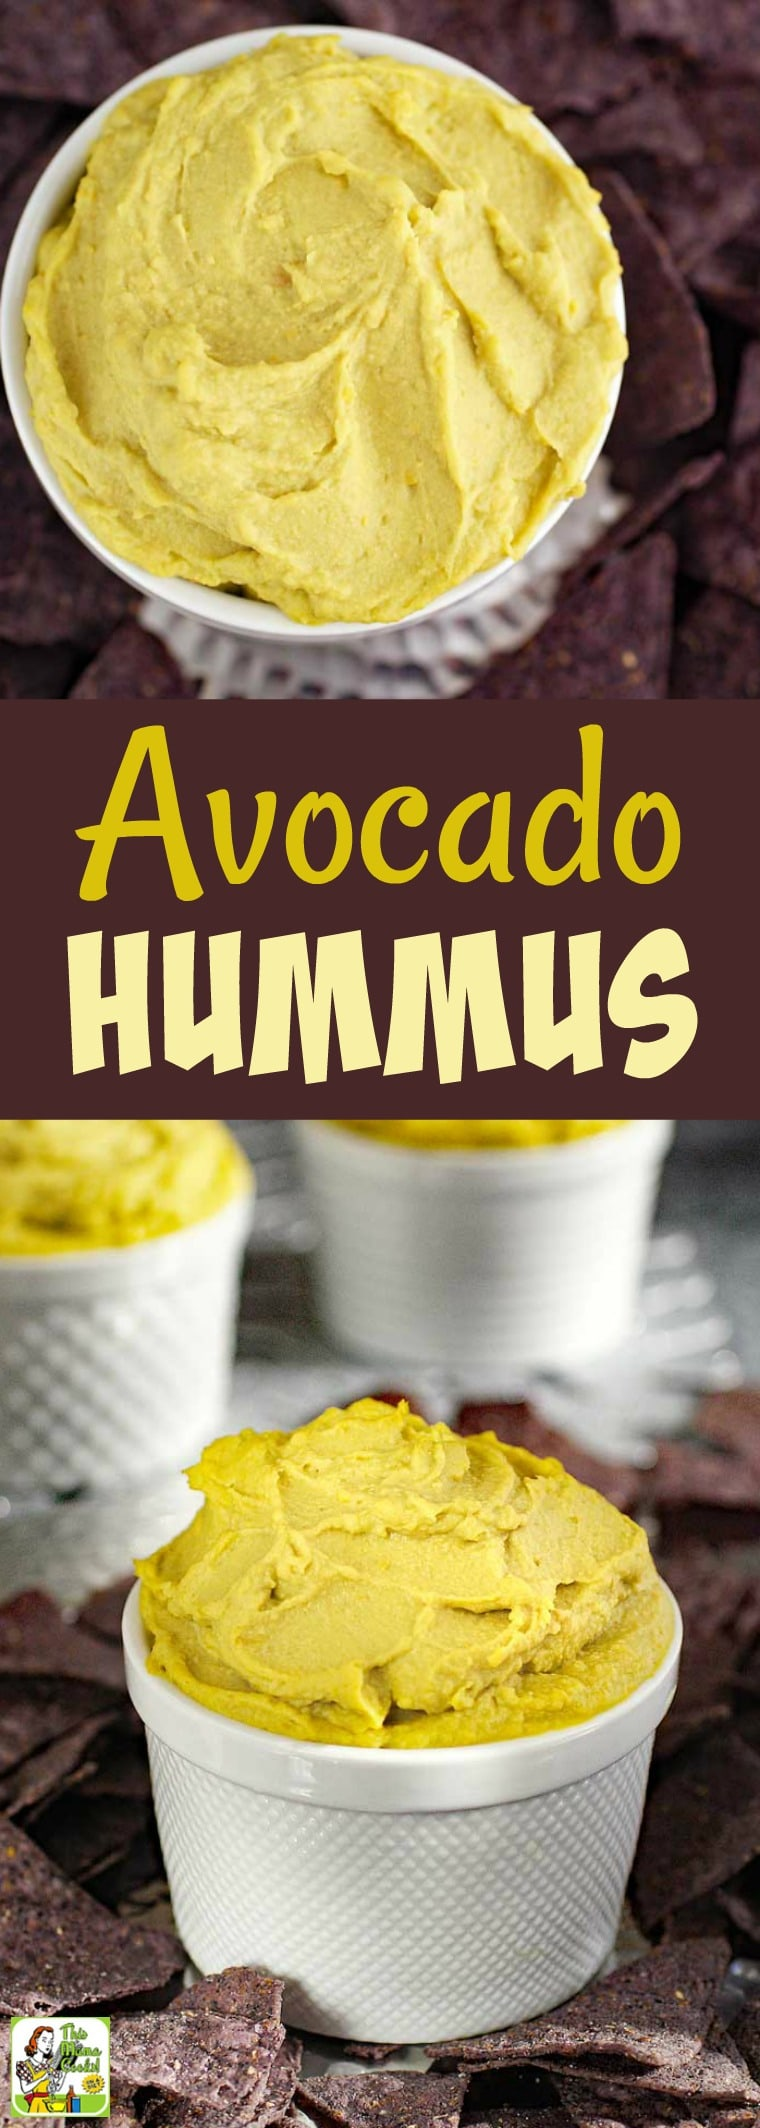 Do you love making homemade hummus recipes for parties? Your guests will love Avocado Hummus. This recipe is for spicy hummus since it uses hot sauce. This party appetizer is gluten free, dairy free, vegan, and filled with healthy fats and protein. #dip #avocado #hummus #glutenfree #dairyfree #vegan #vegetarian #healthy #appetizers